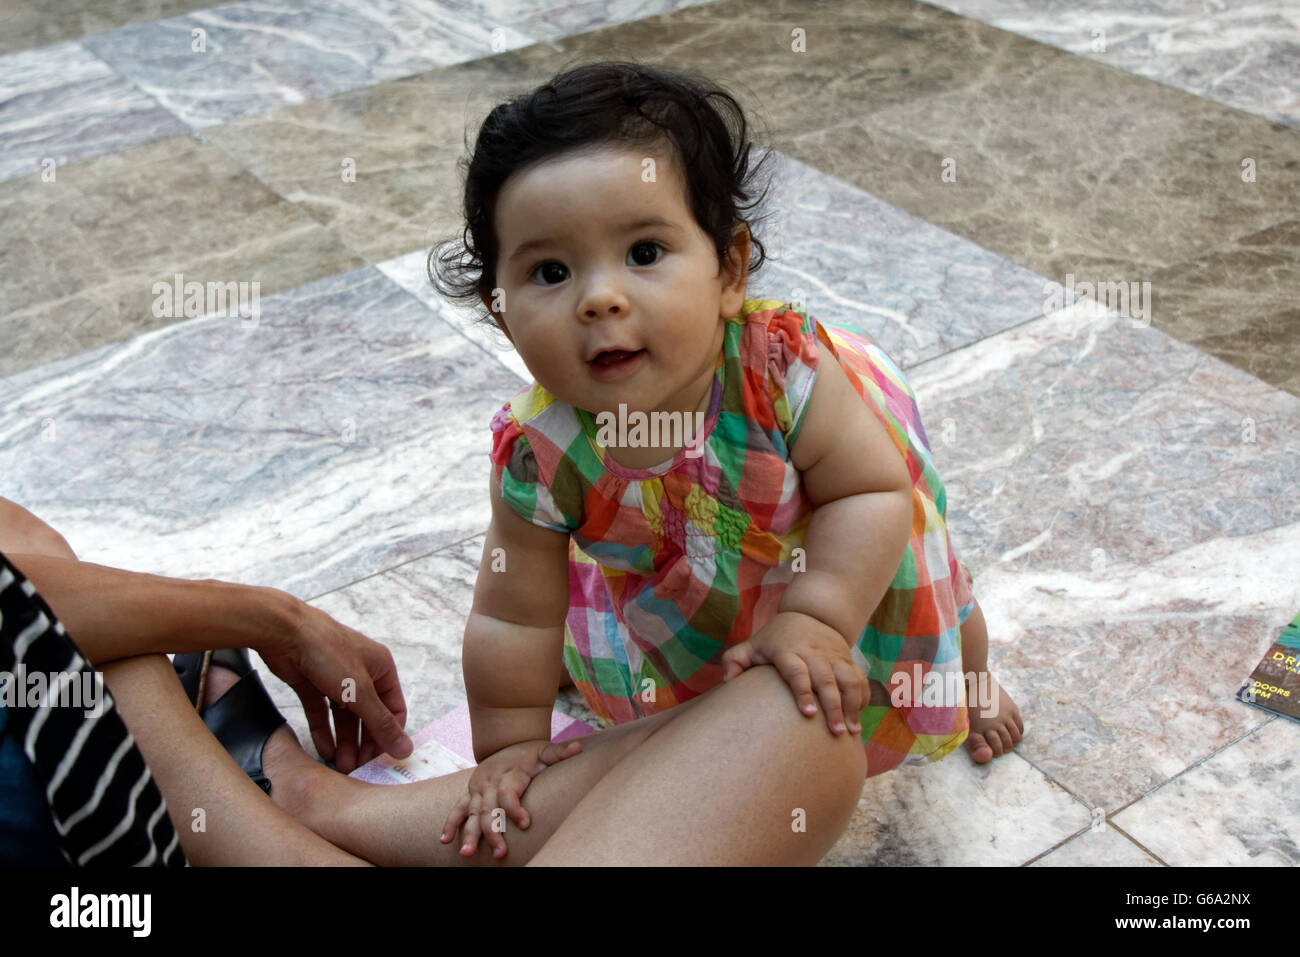 A baby attending a concert with her parents in Battery Park City, a neighborhood in Manhattan, New York City. - Stock Image